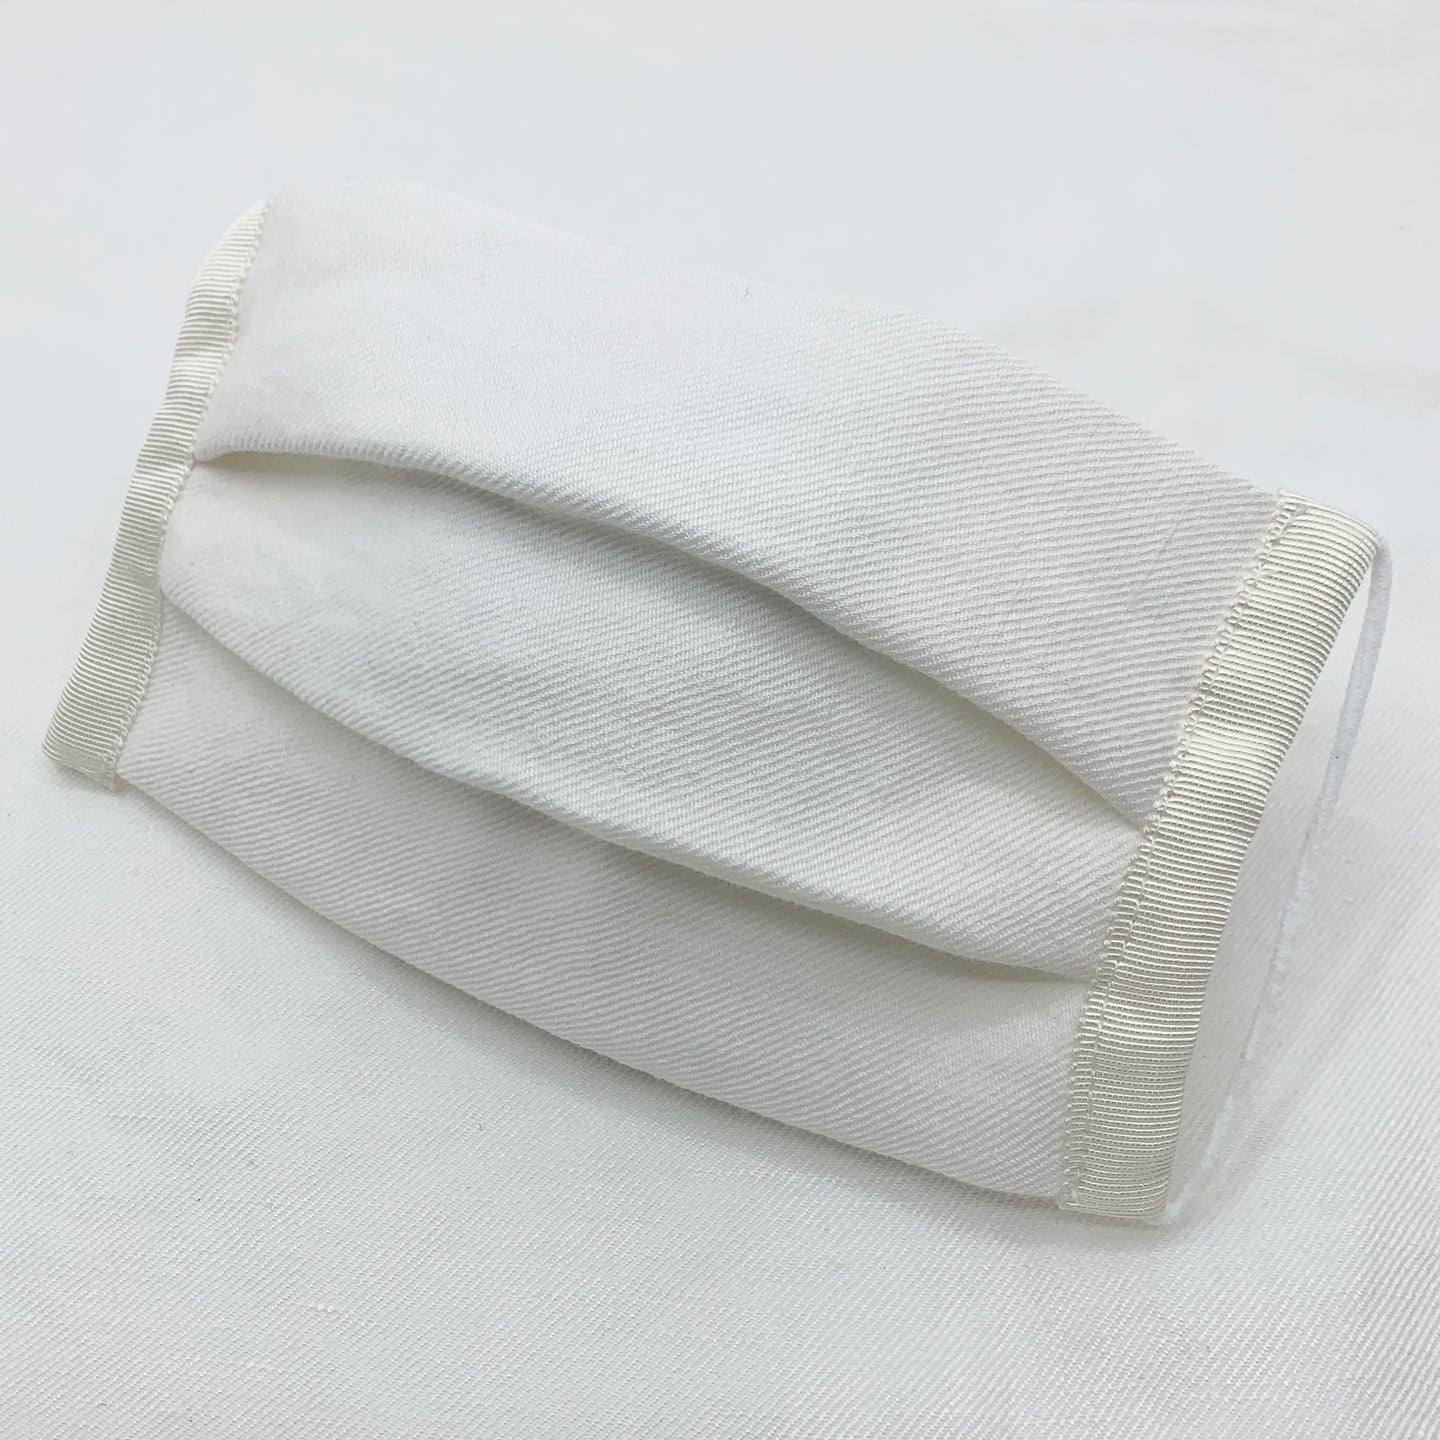 COMFORTABLE FACE MASK - LINEN / BAMBOO